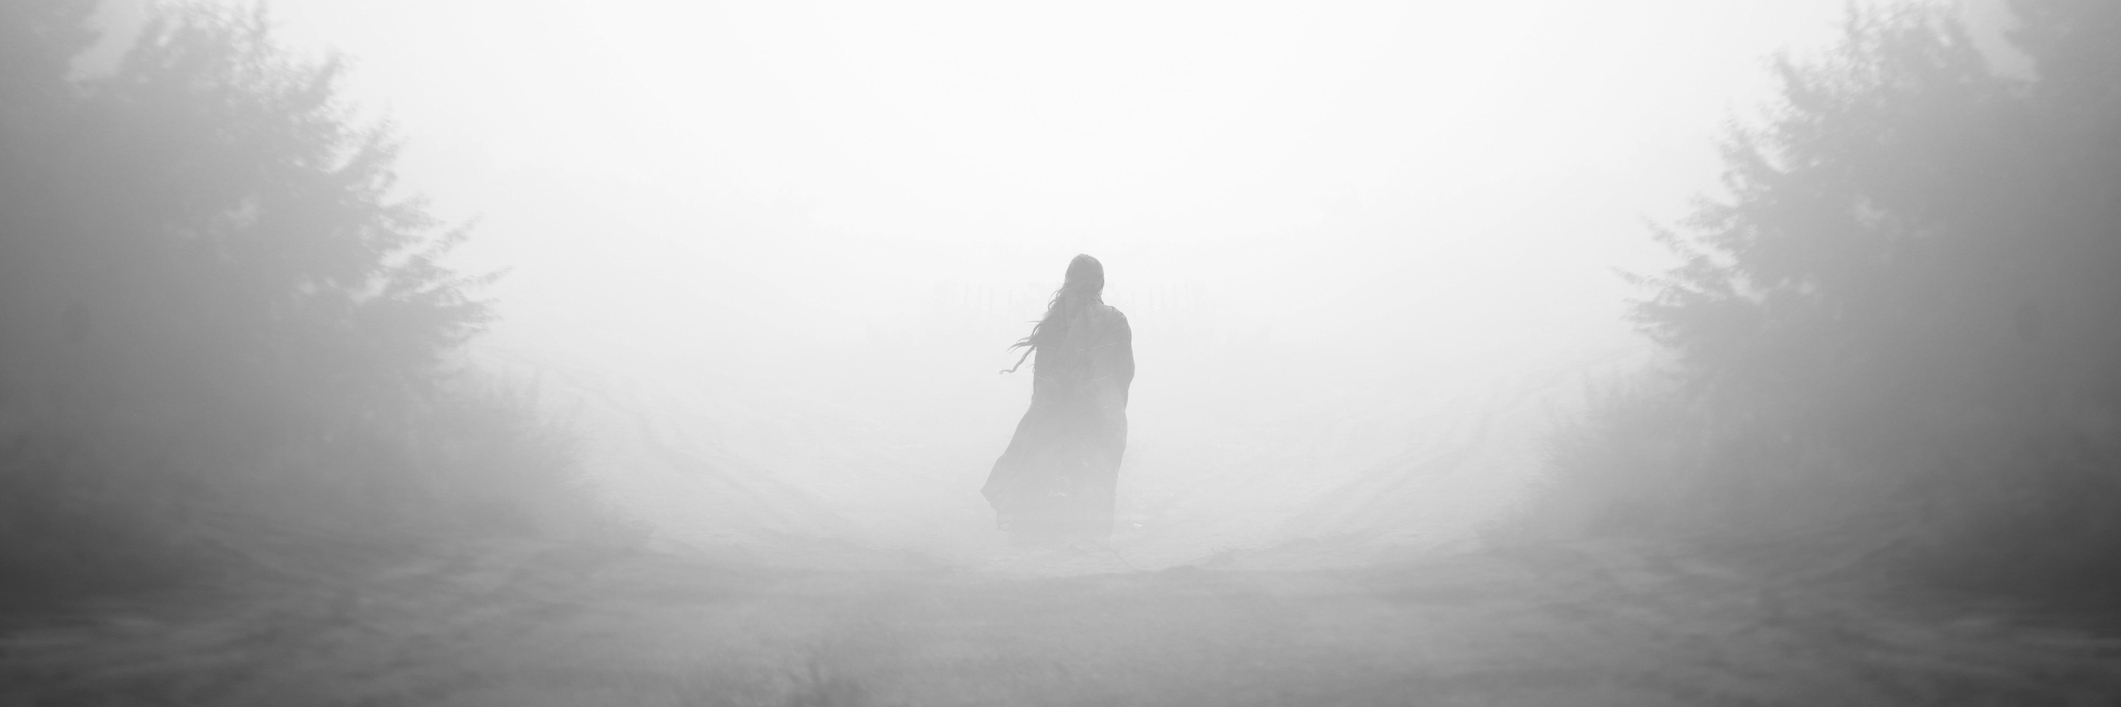 woman walking down a foggy road in the forest